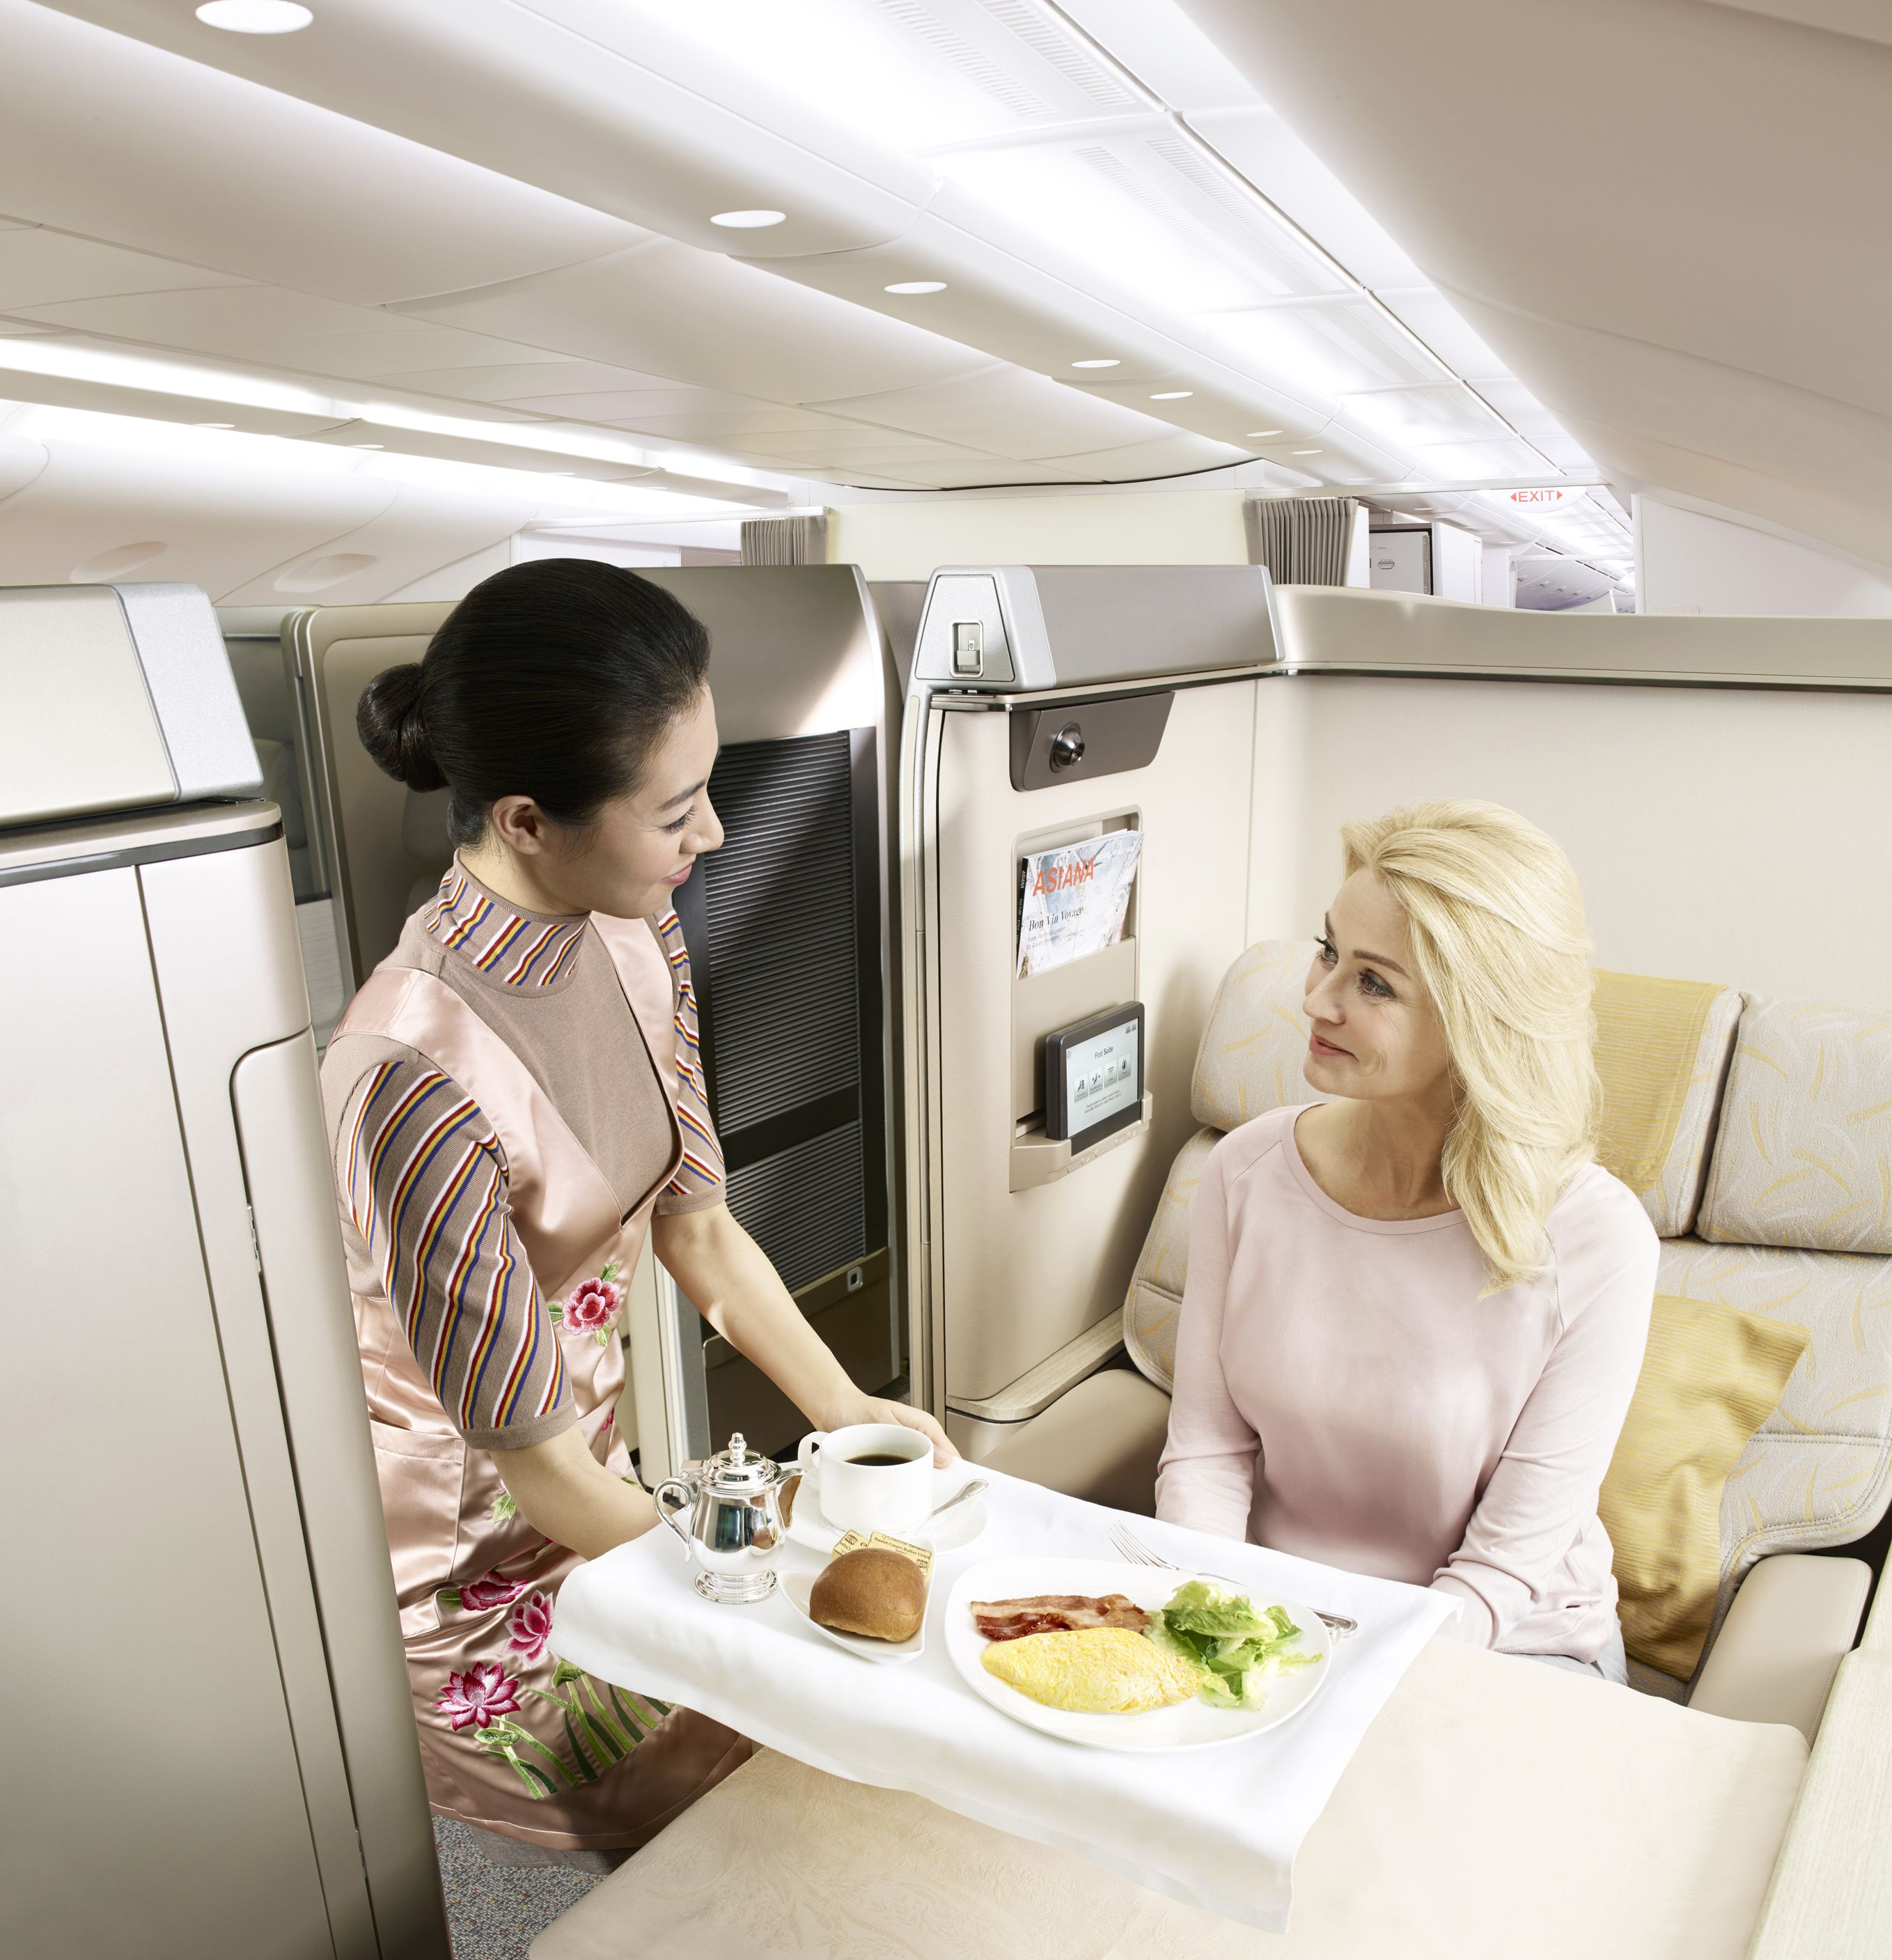 We offer a special inflight meal service for those who do